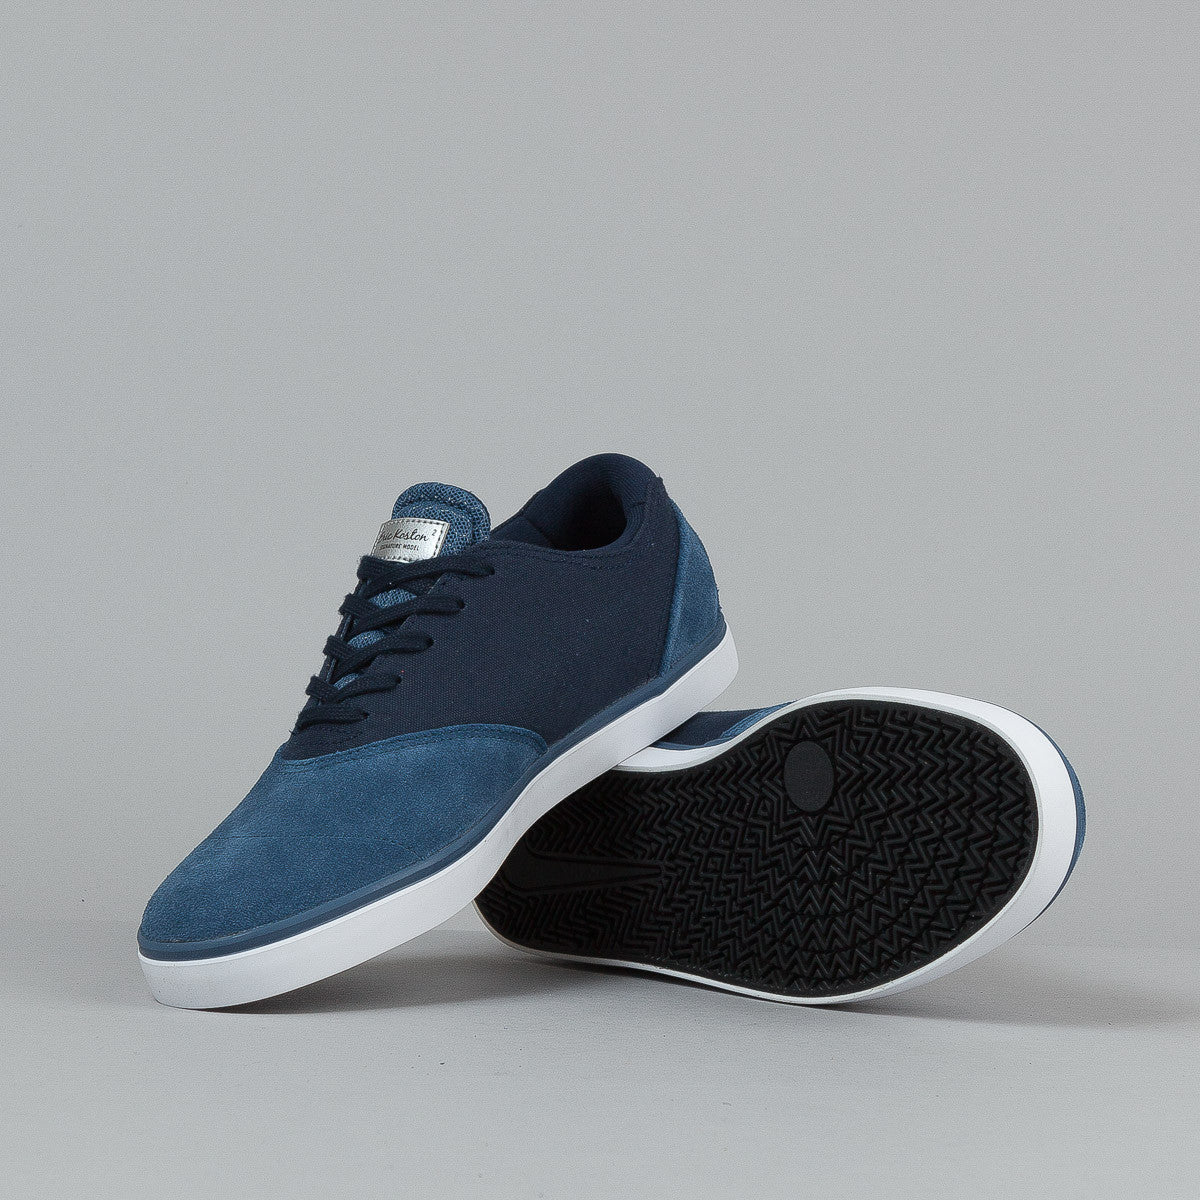 Nike Sb Eric Koston 2 LR New Slate / Metallic Silver - Obsidian - Black